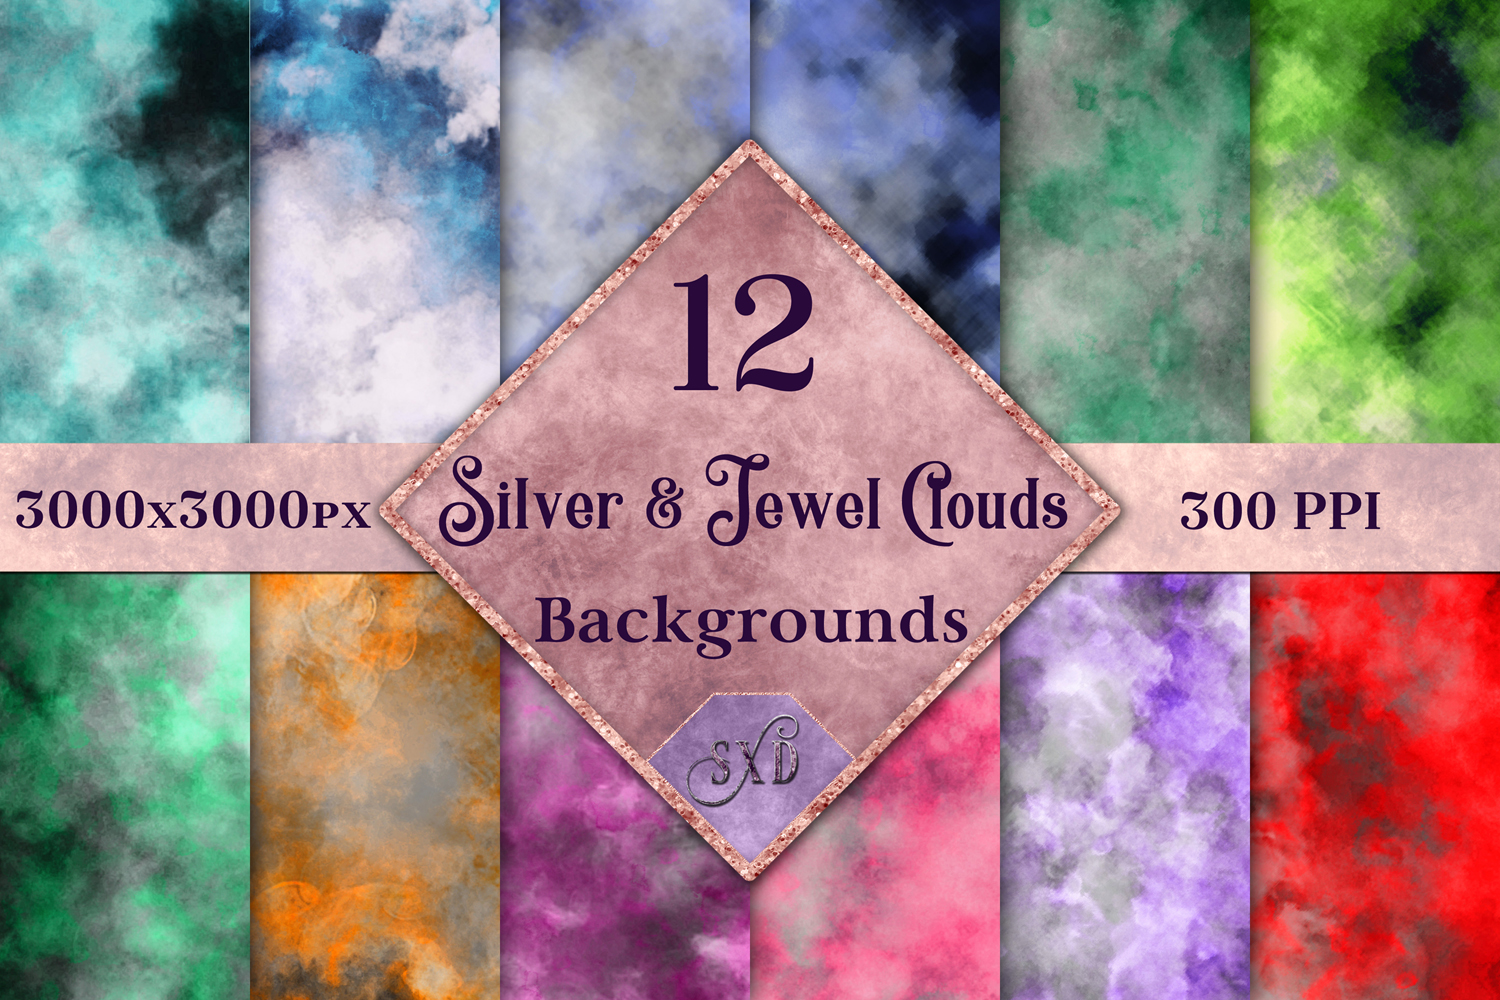 Silver and Jewel Colour Clouds Backgrounds - 12 Image Set example image 1